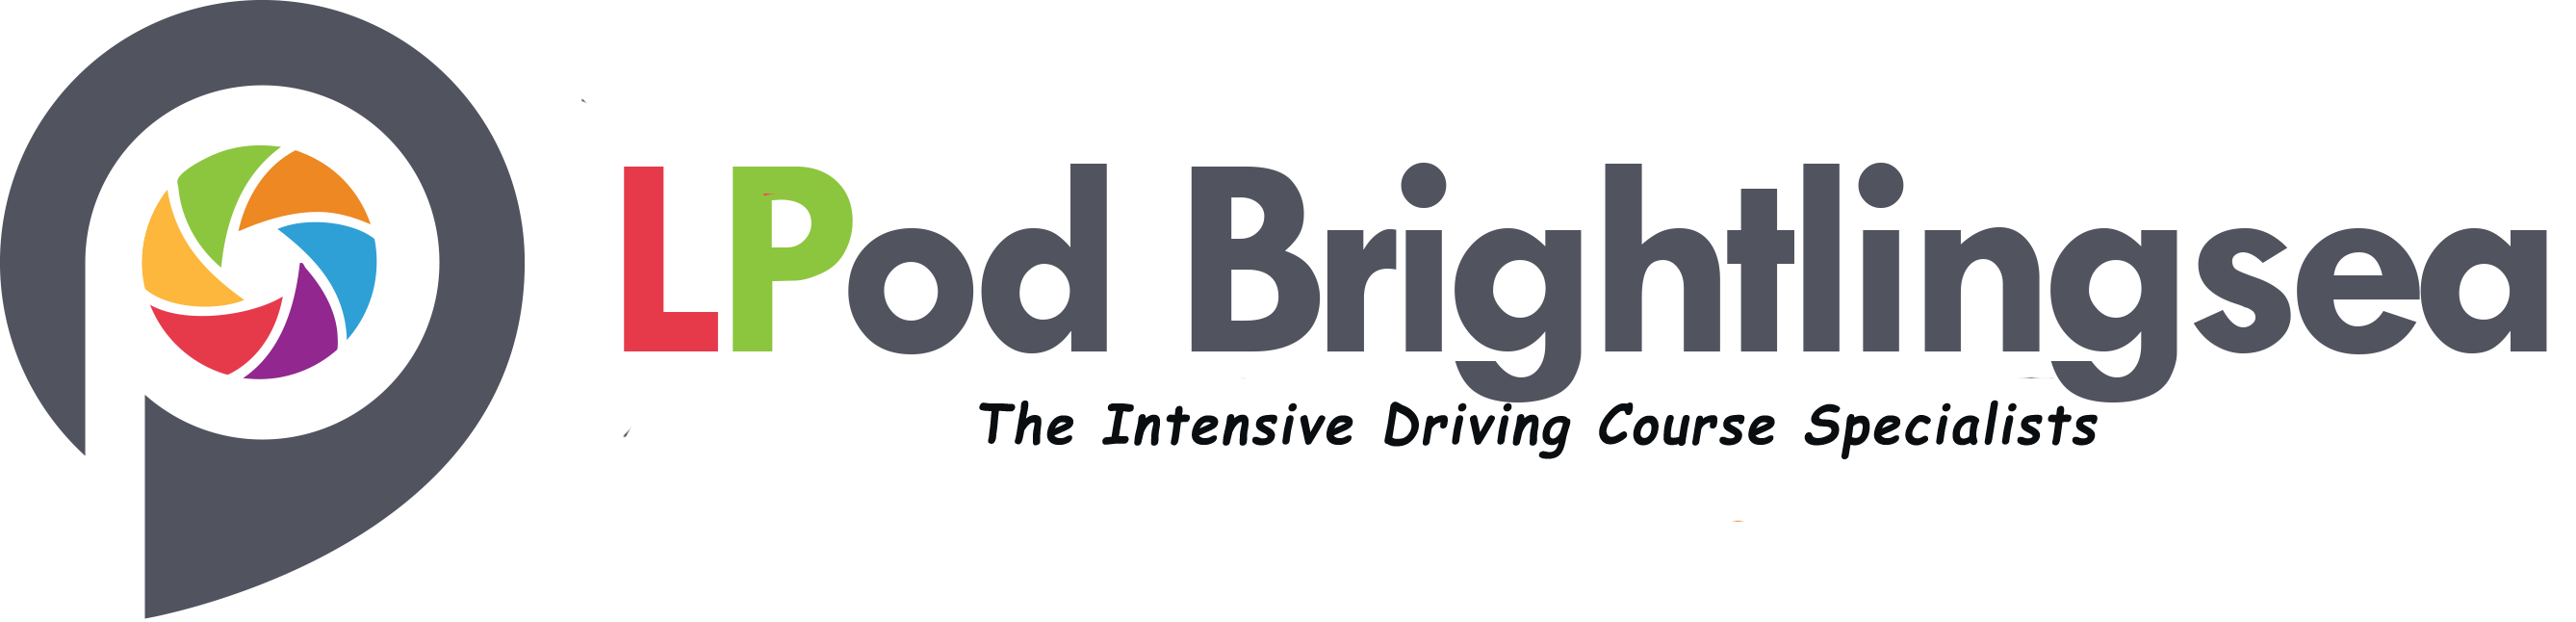 intensive driving courses Brightlingsea